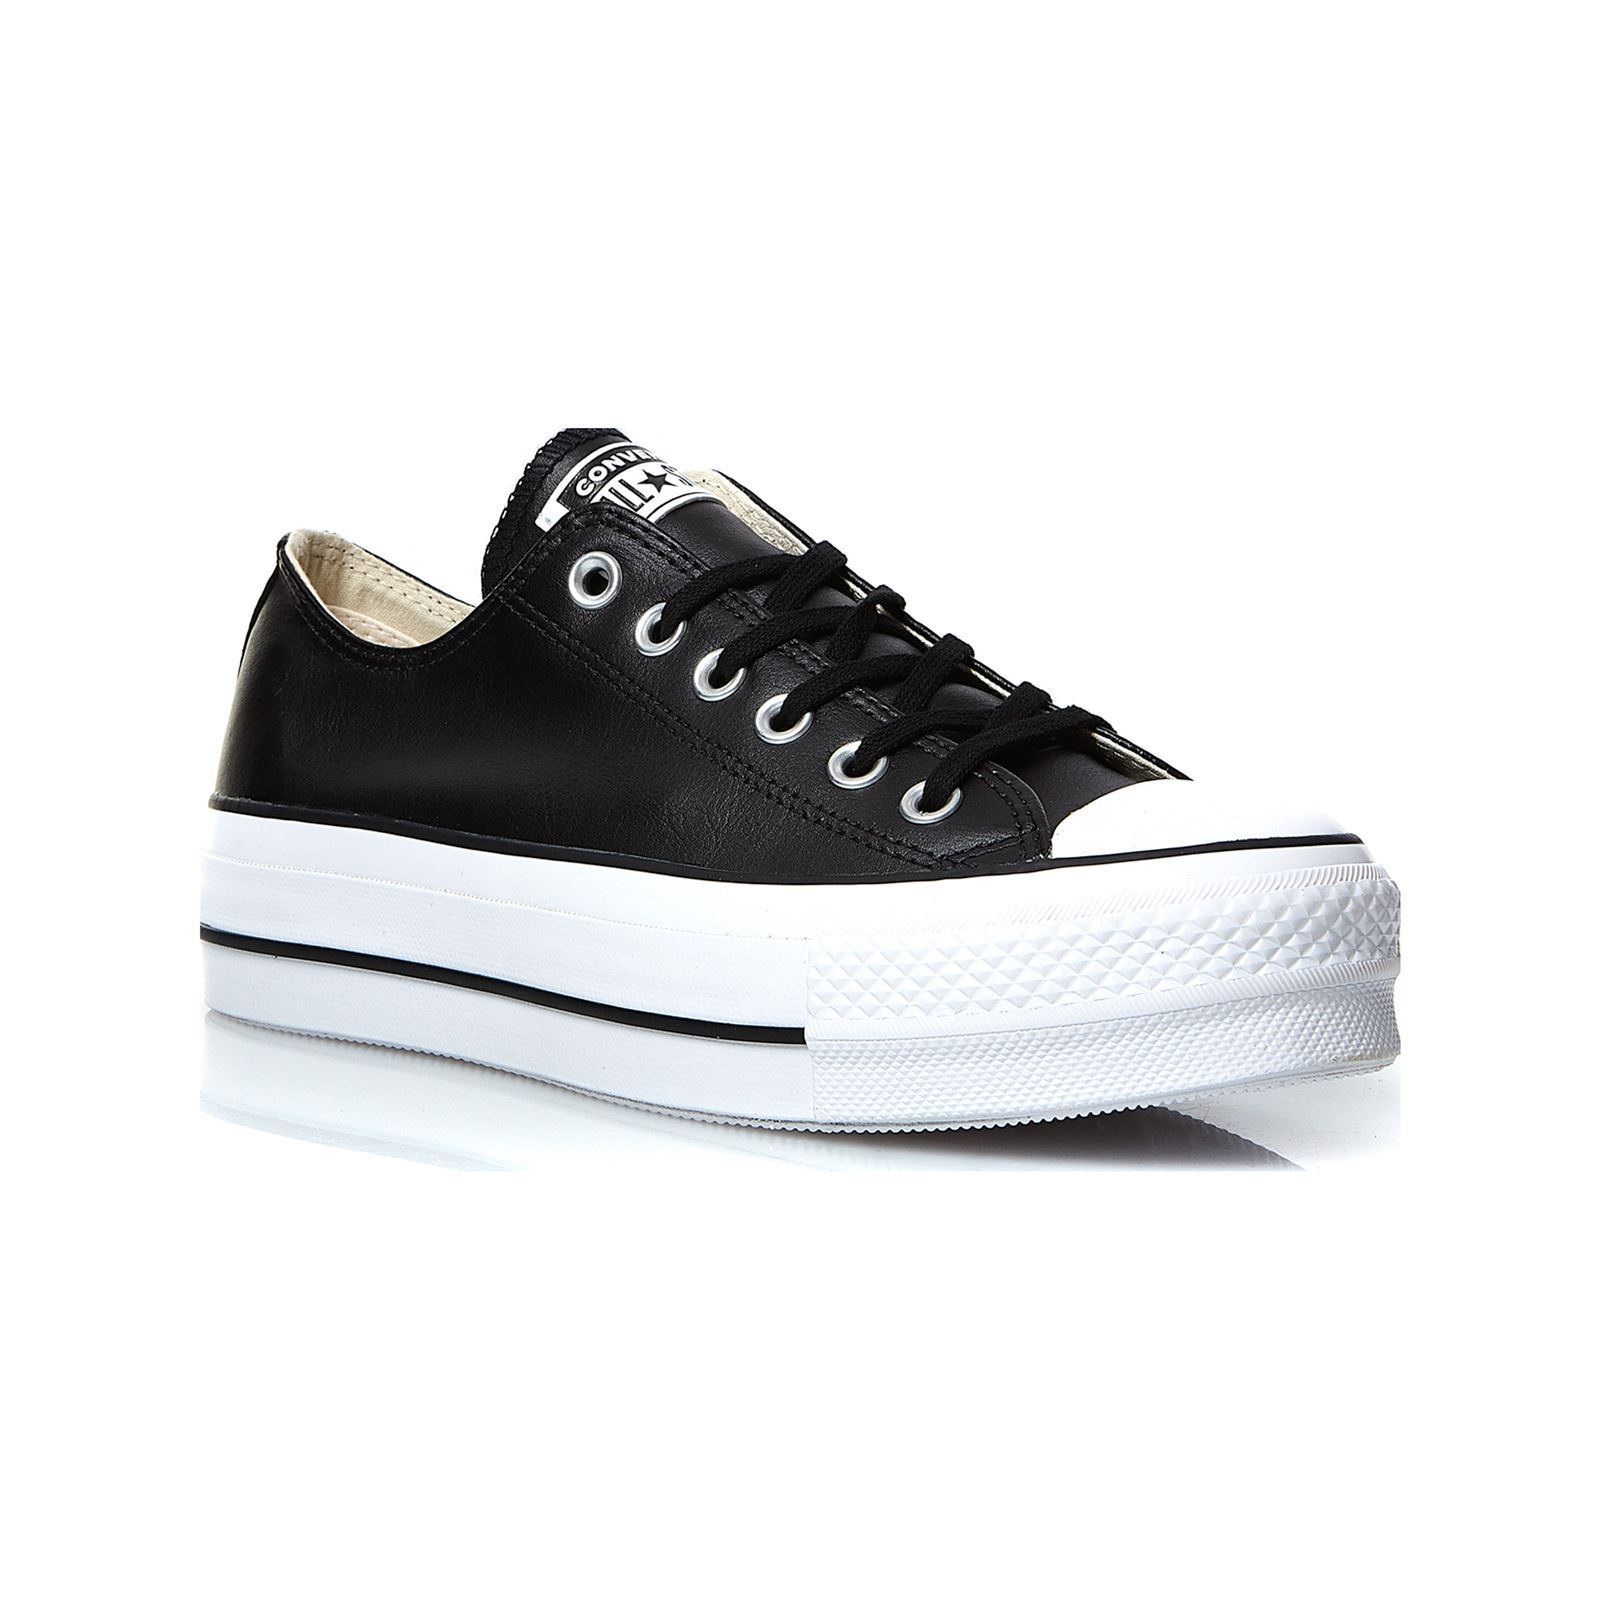 newest 18490 75e0a CONVERSE Chuck Taylor All Star Lift Clean - Baskets basses - noir